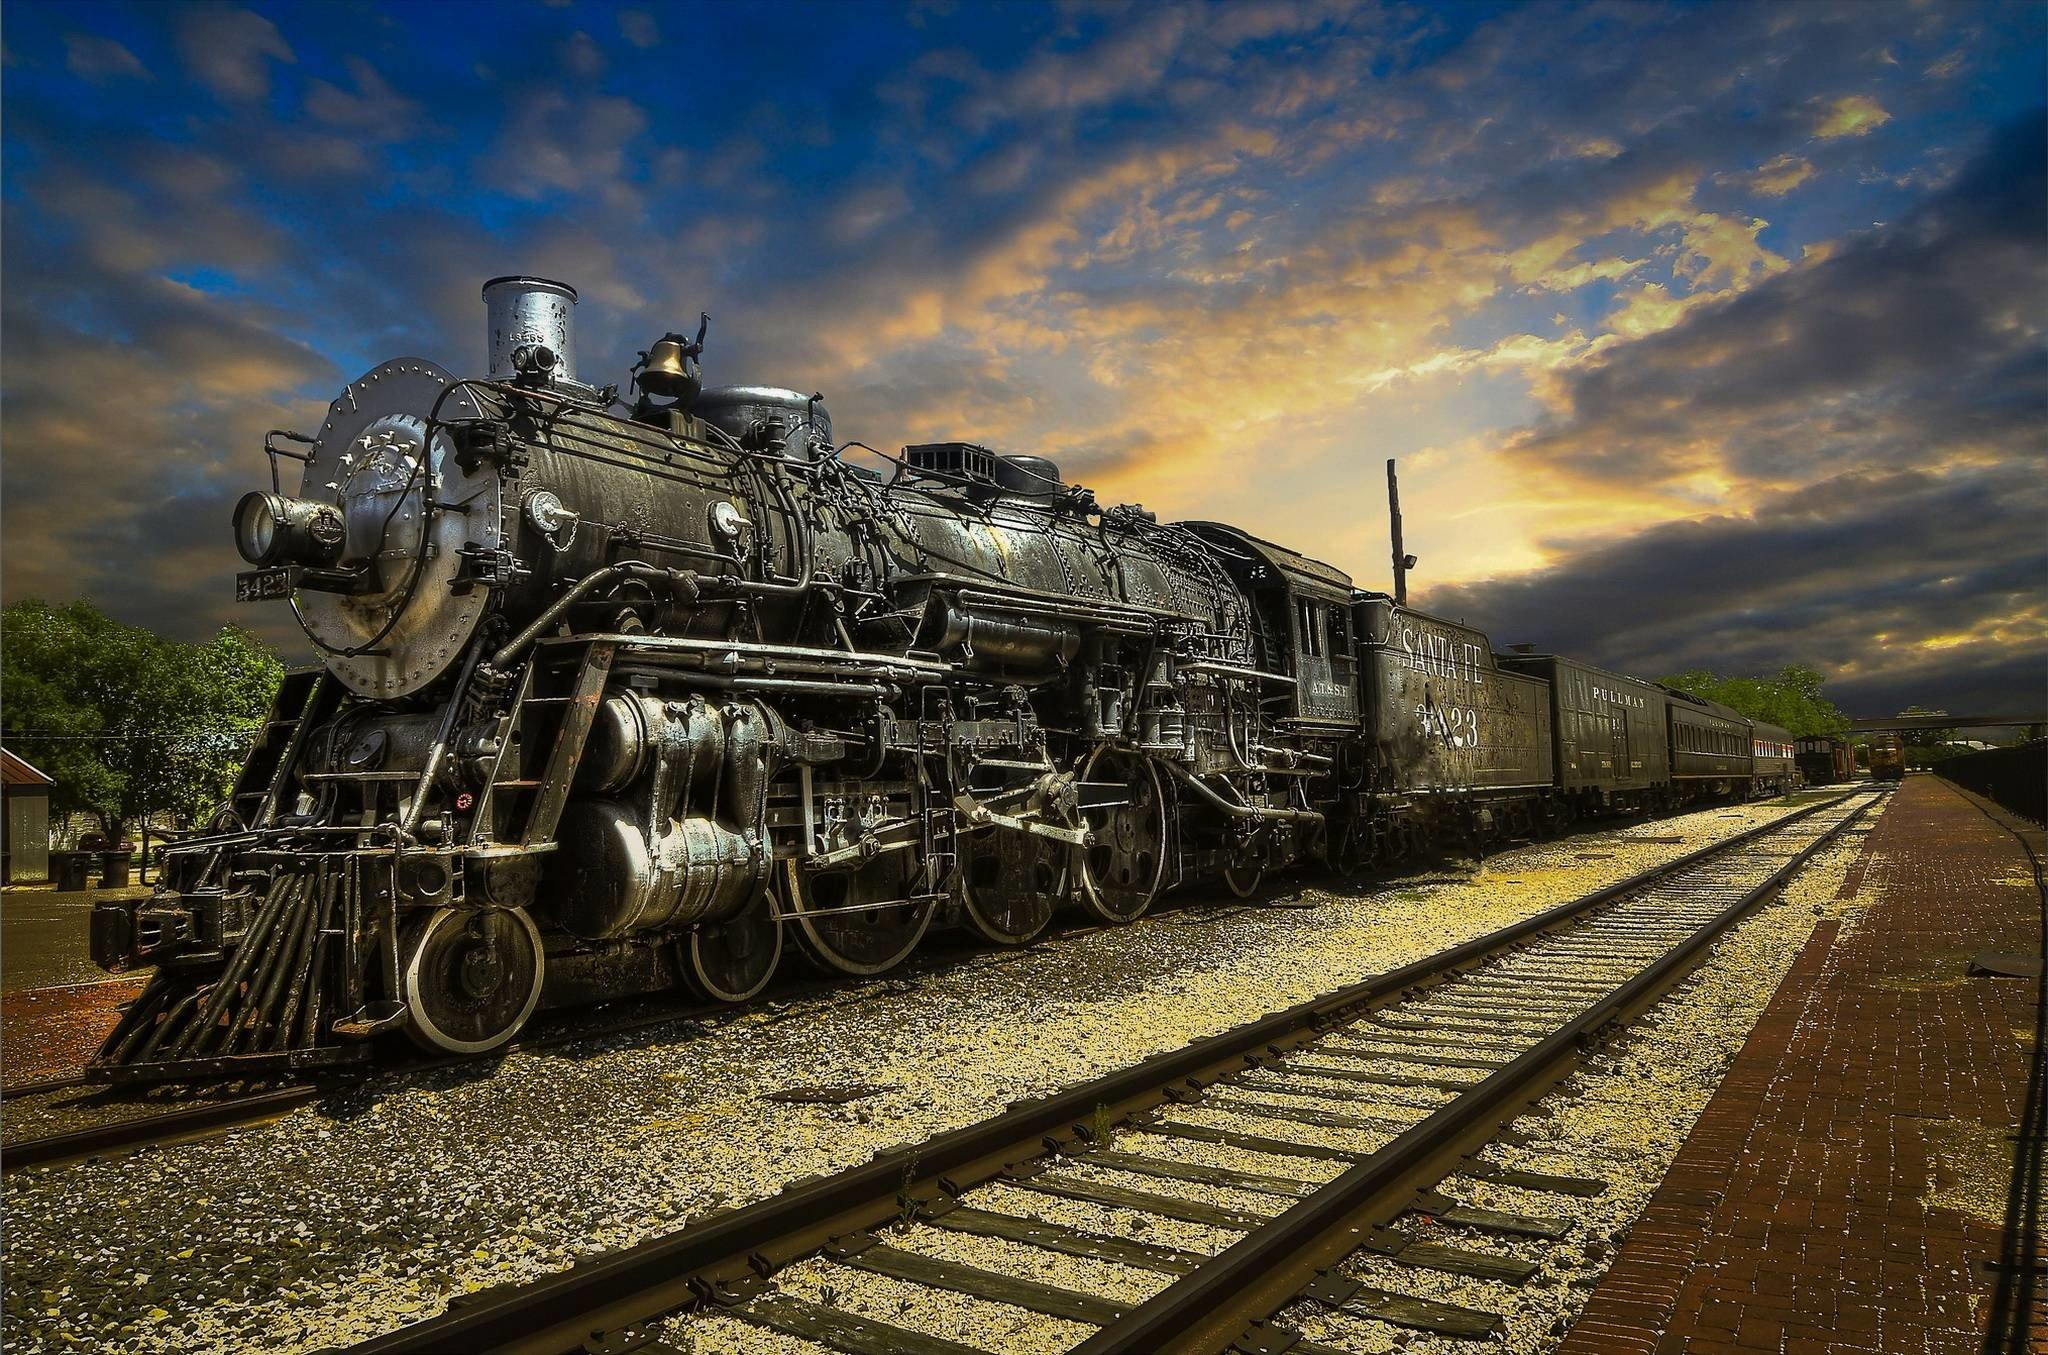 Steam Train Wallpaper 73 images 2048x1355